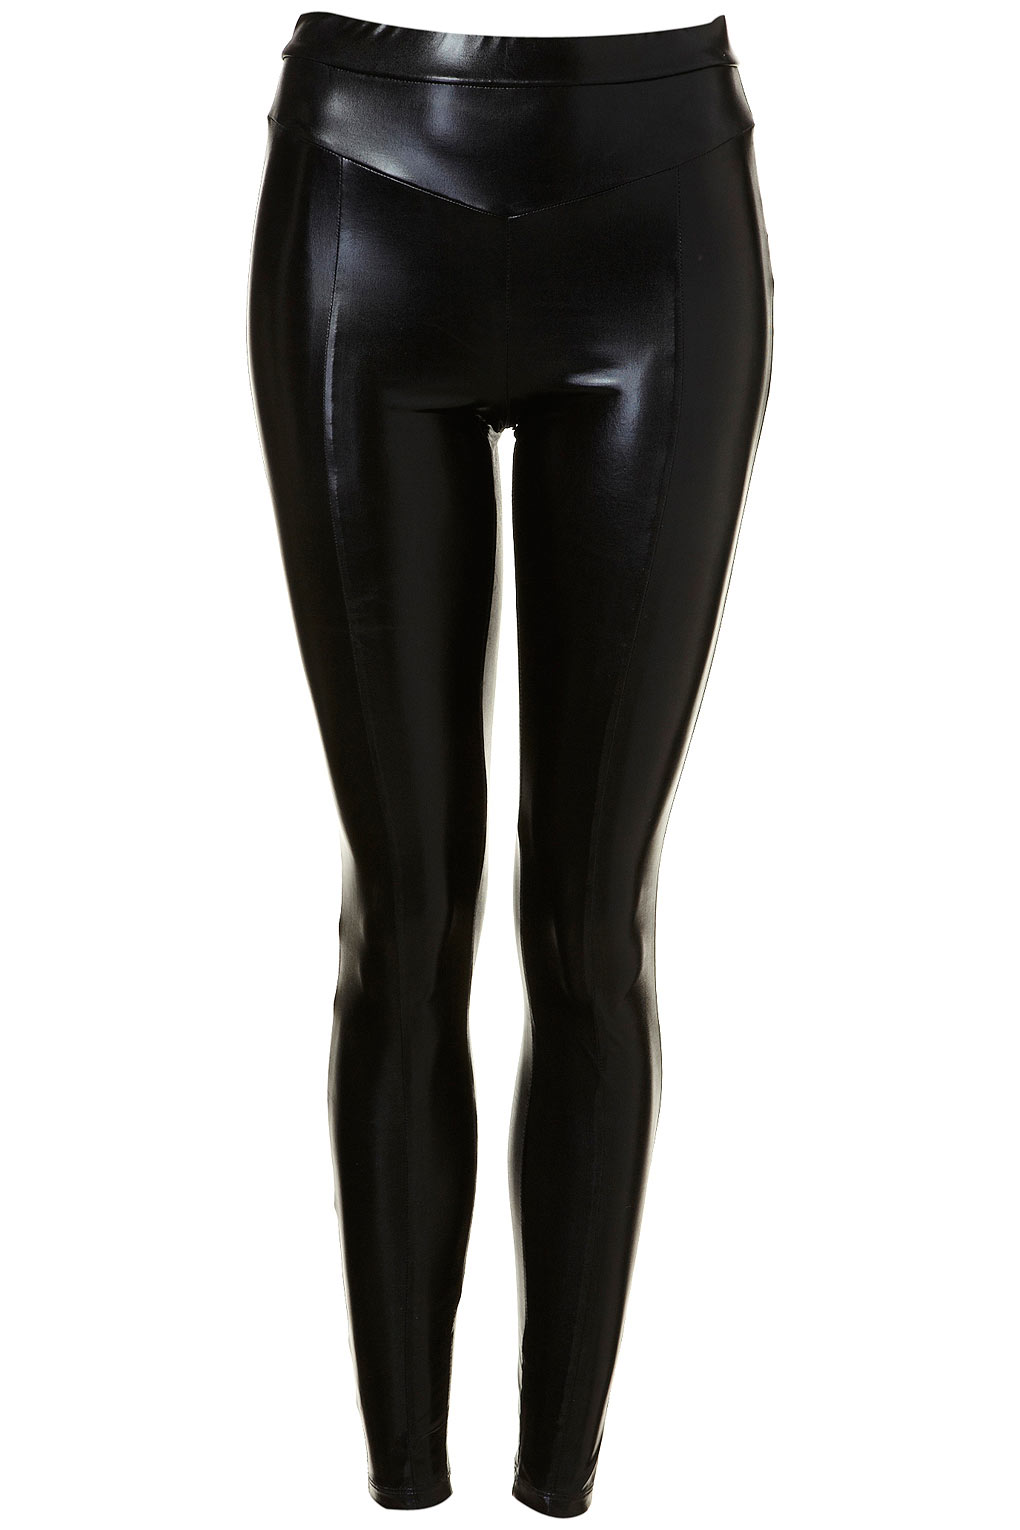 Topshop Black Wetlook Pvc Shiny Leggings Toppingyou Blog